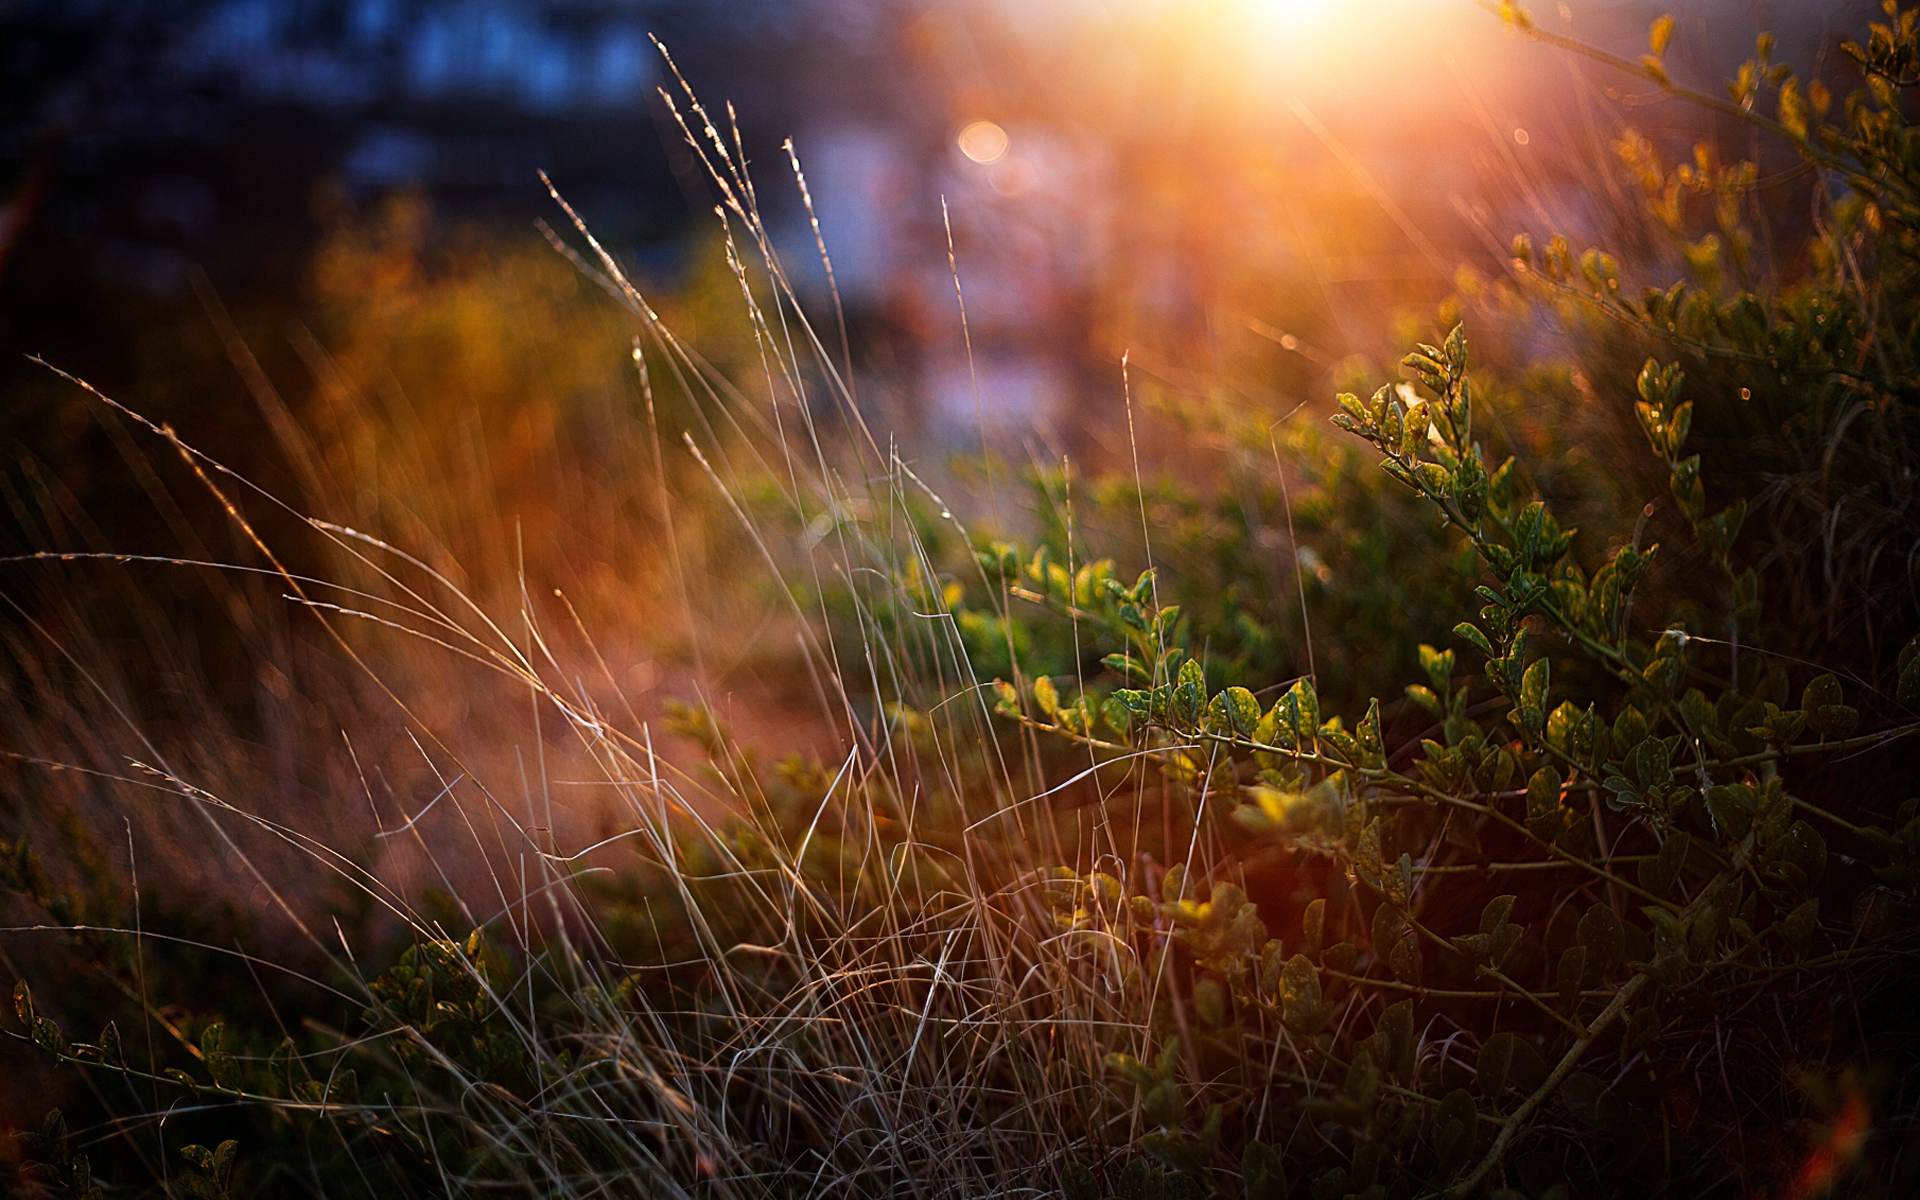 Nature Landscapes Plants Grass Garden Macro Close Up Sun Sunlight Sunrise  Sunset Wallpaper | 1920x1200 | 25610 | WallpaperUP